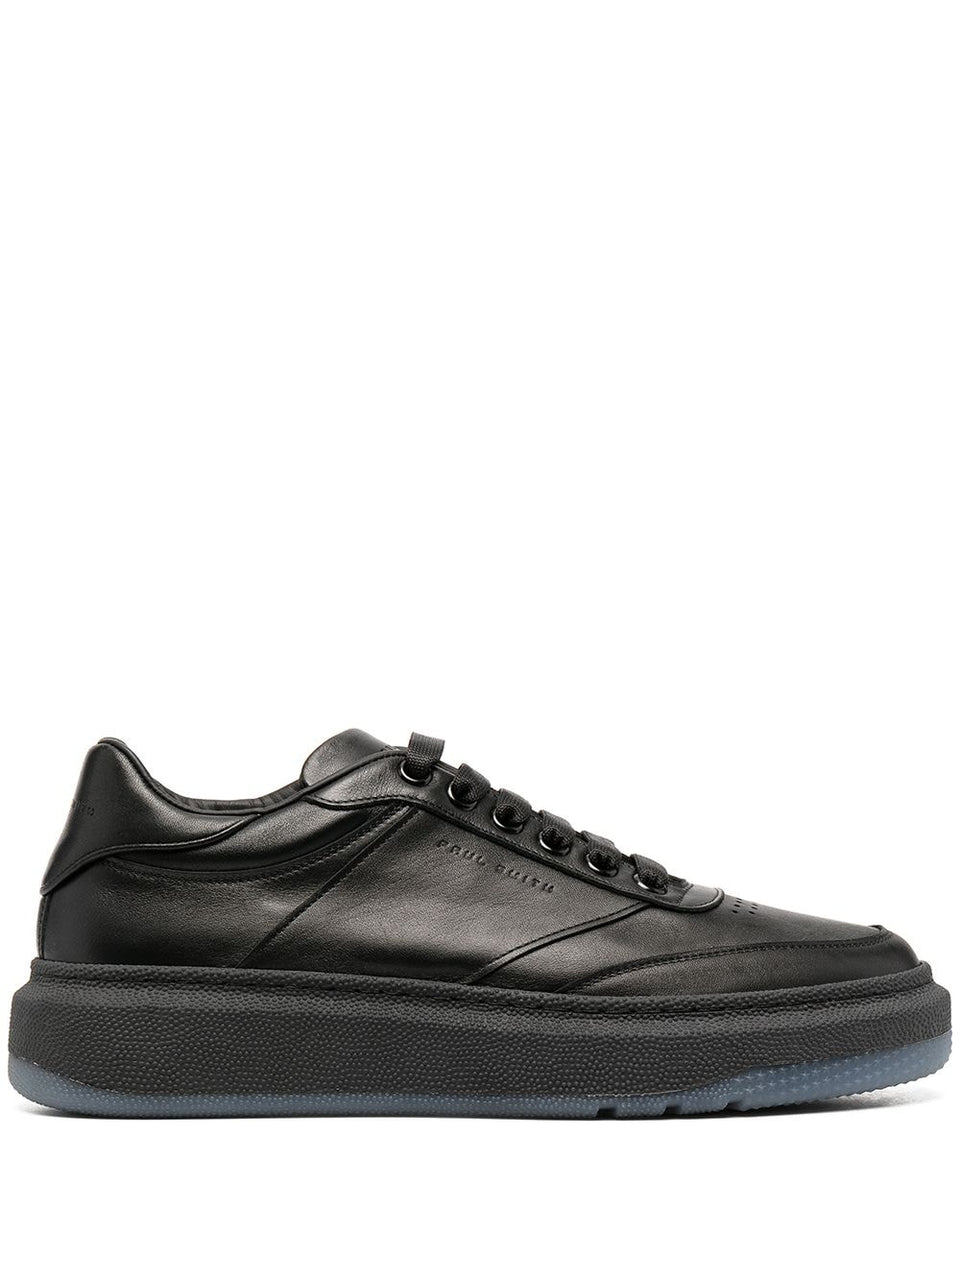 PAUL SMITH CHUNKY TRAINERS